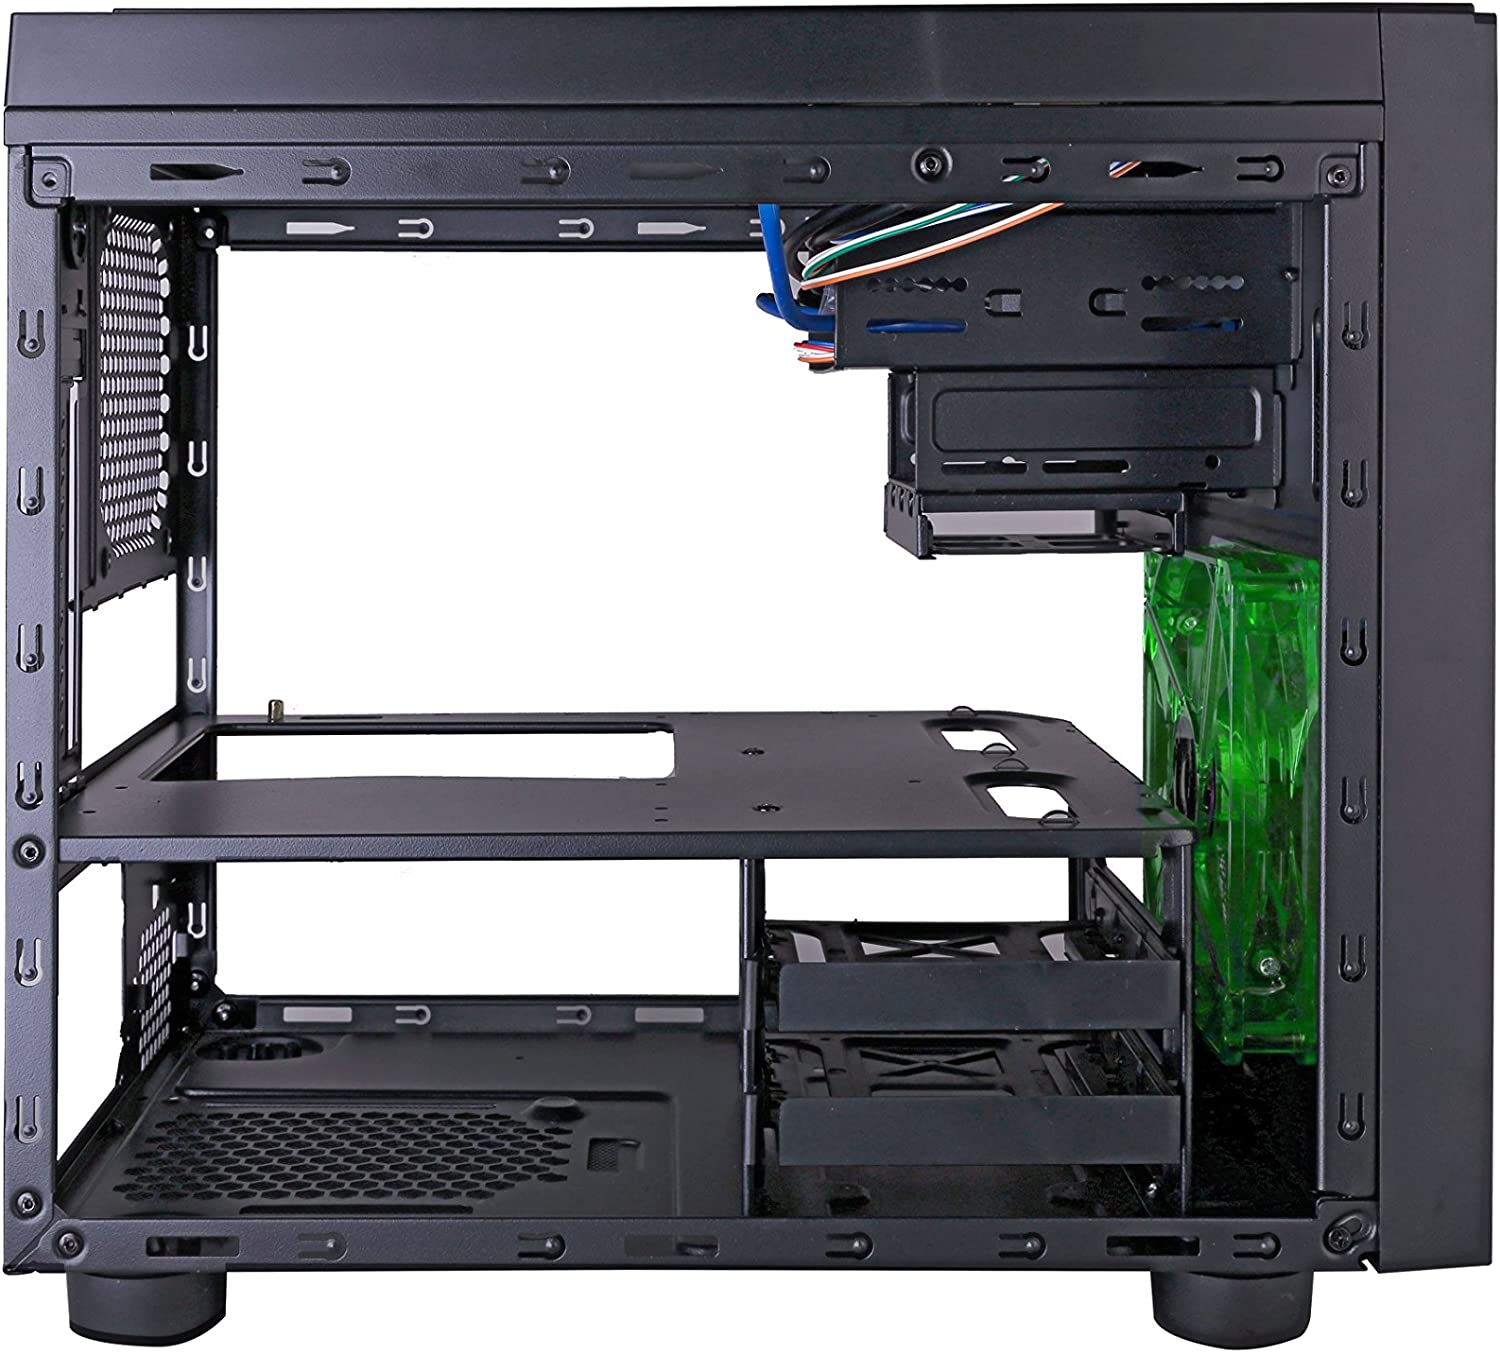 USB3.0//USB2.0//HD Audio Ports APEVIA X-QPACK3-GN Micro ATX Cube Gaming//HTPC Case Green Dust Filter 2xGreen Windows Flip Open Design Supports Video Card up to 320mm//ATX PS 1 x 140mm Green LED fan